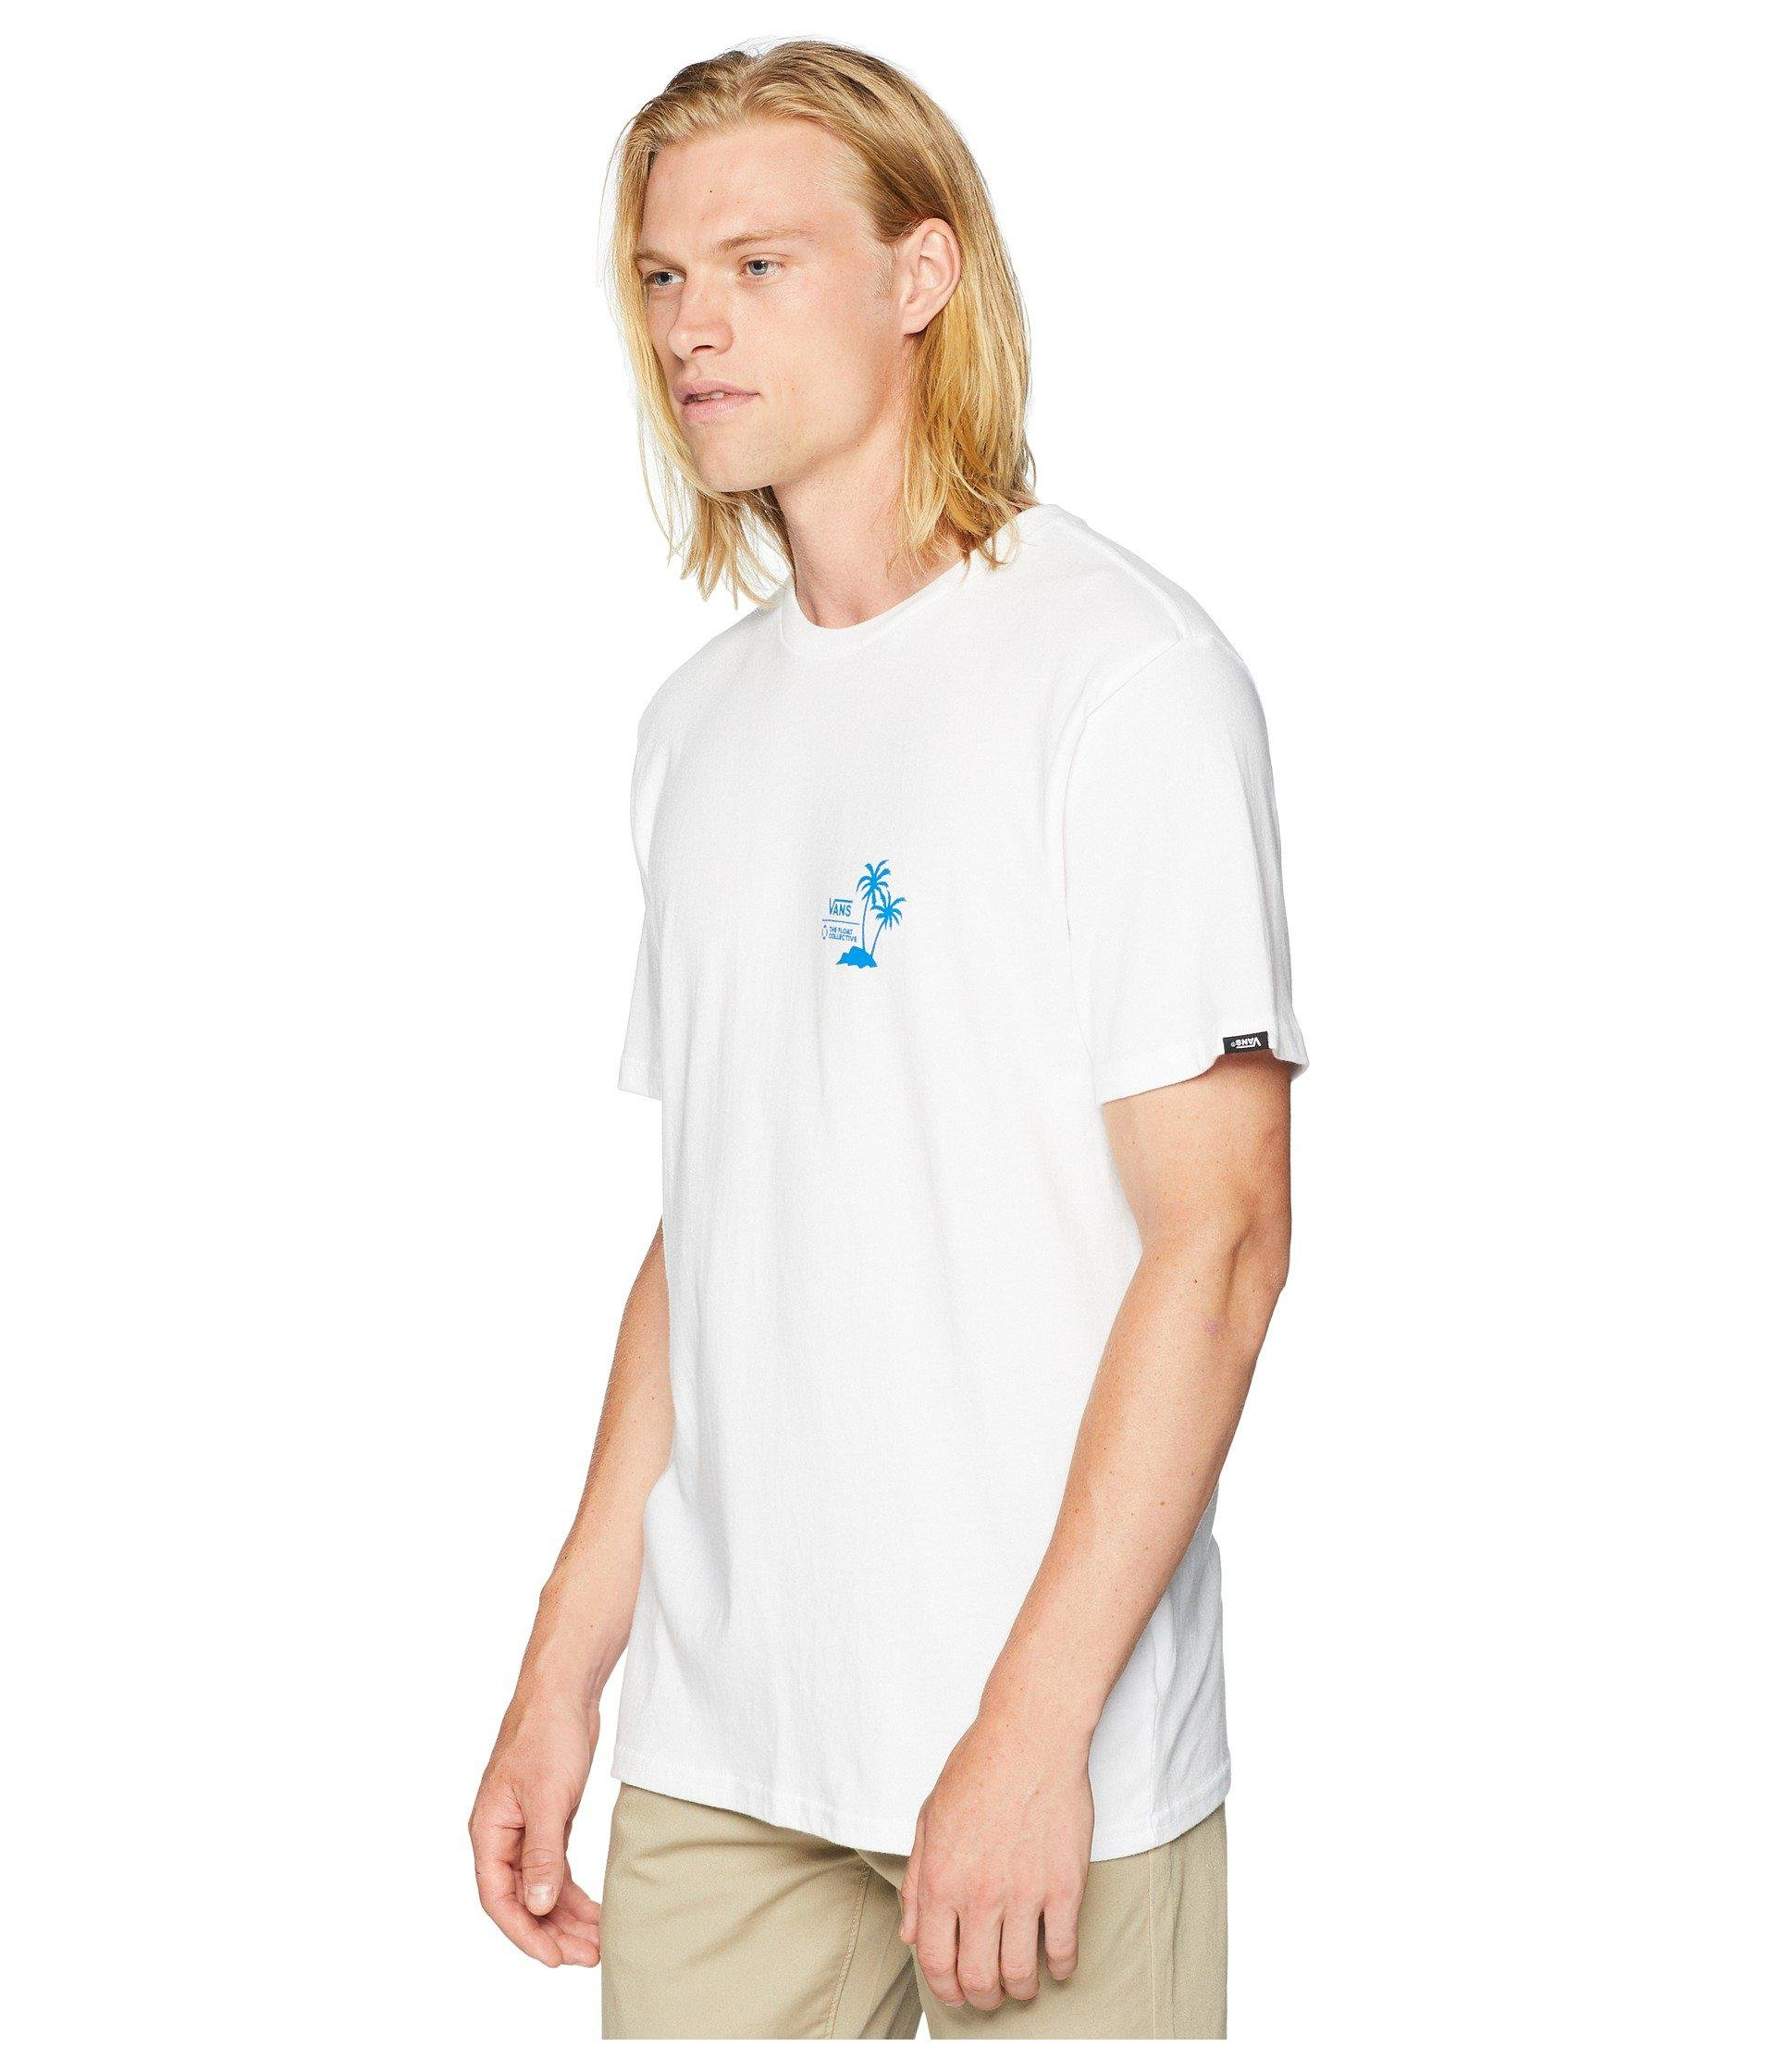 ee7123b3b6 Lyst - Vans X Float Collective T-shirt in White for Men